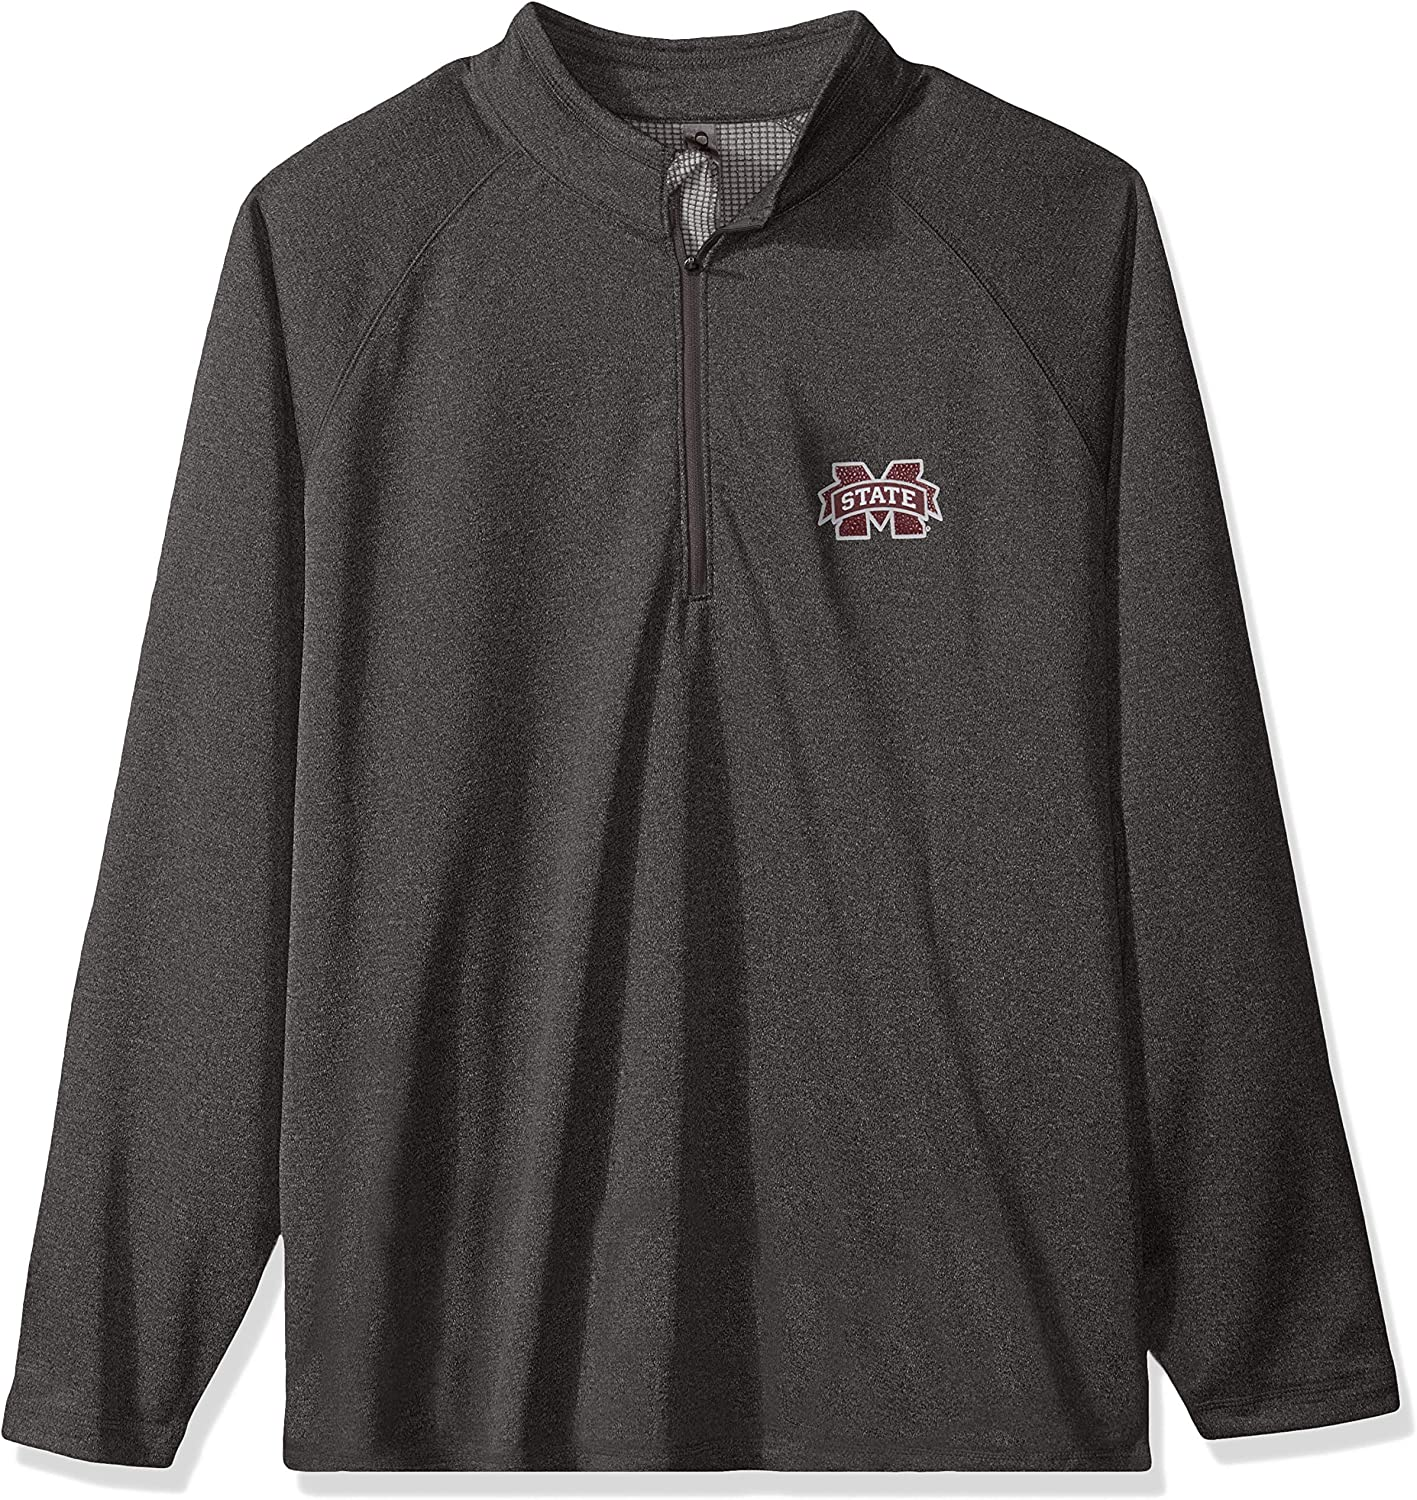 Ouray Sportswear NCAA Mens Zip 4 Quest 1 Max 64% OFF Austin Mall